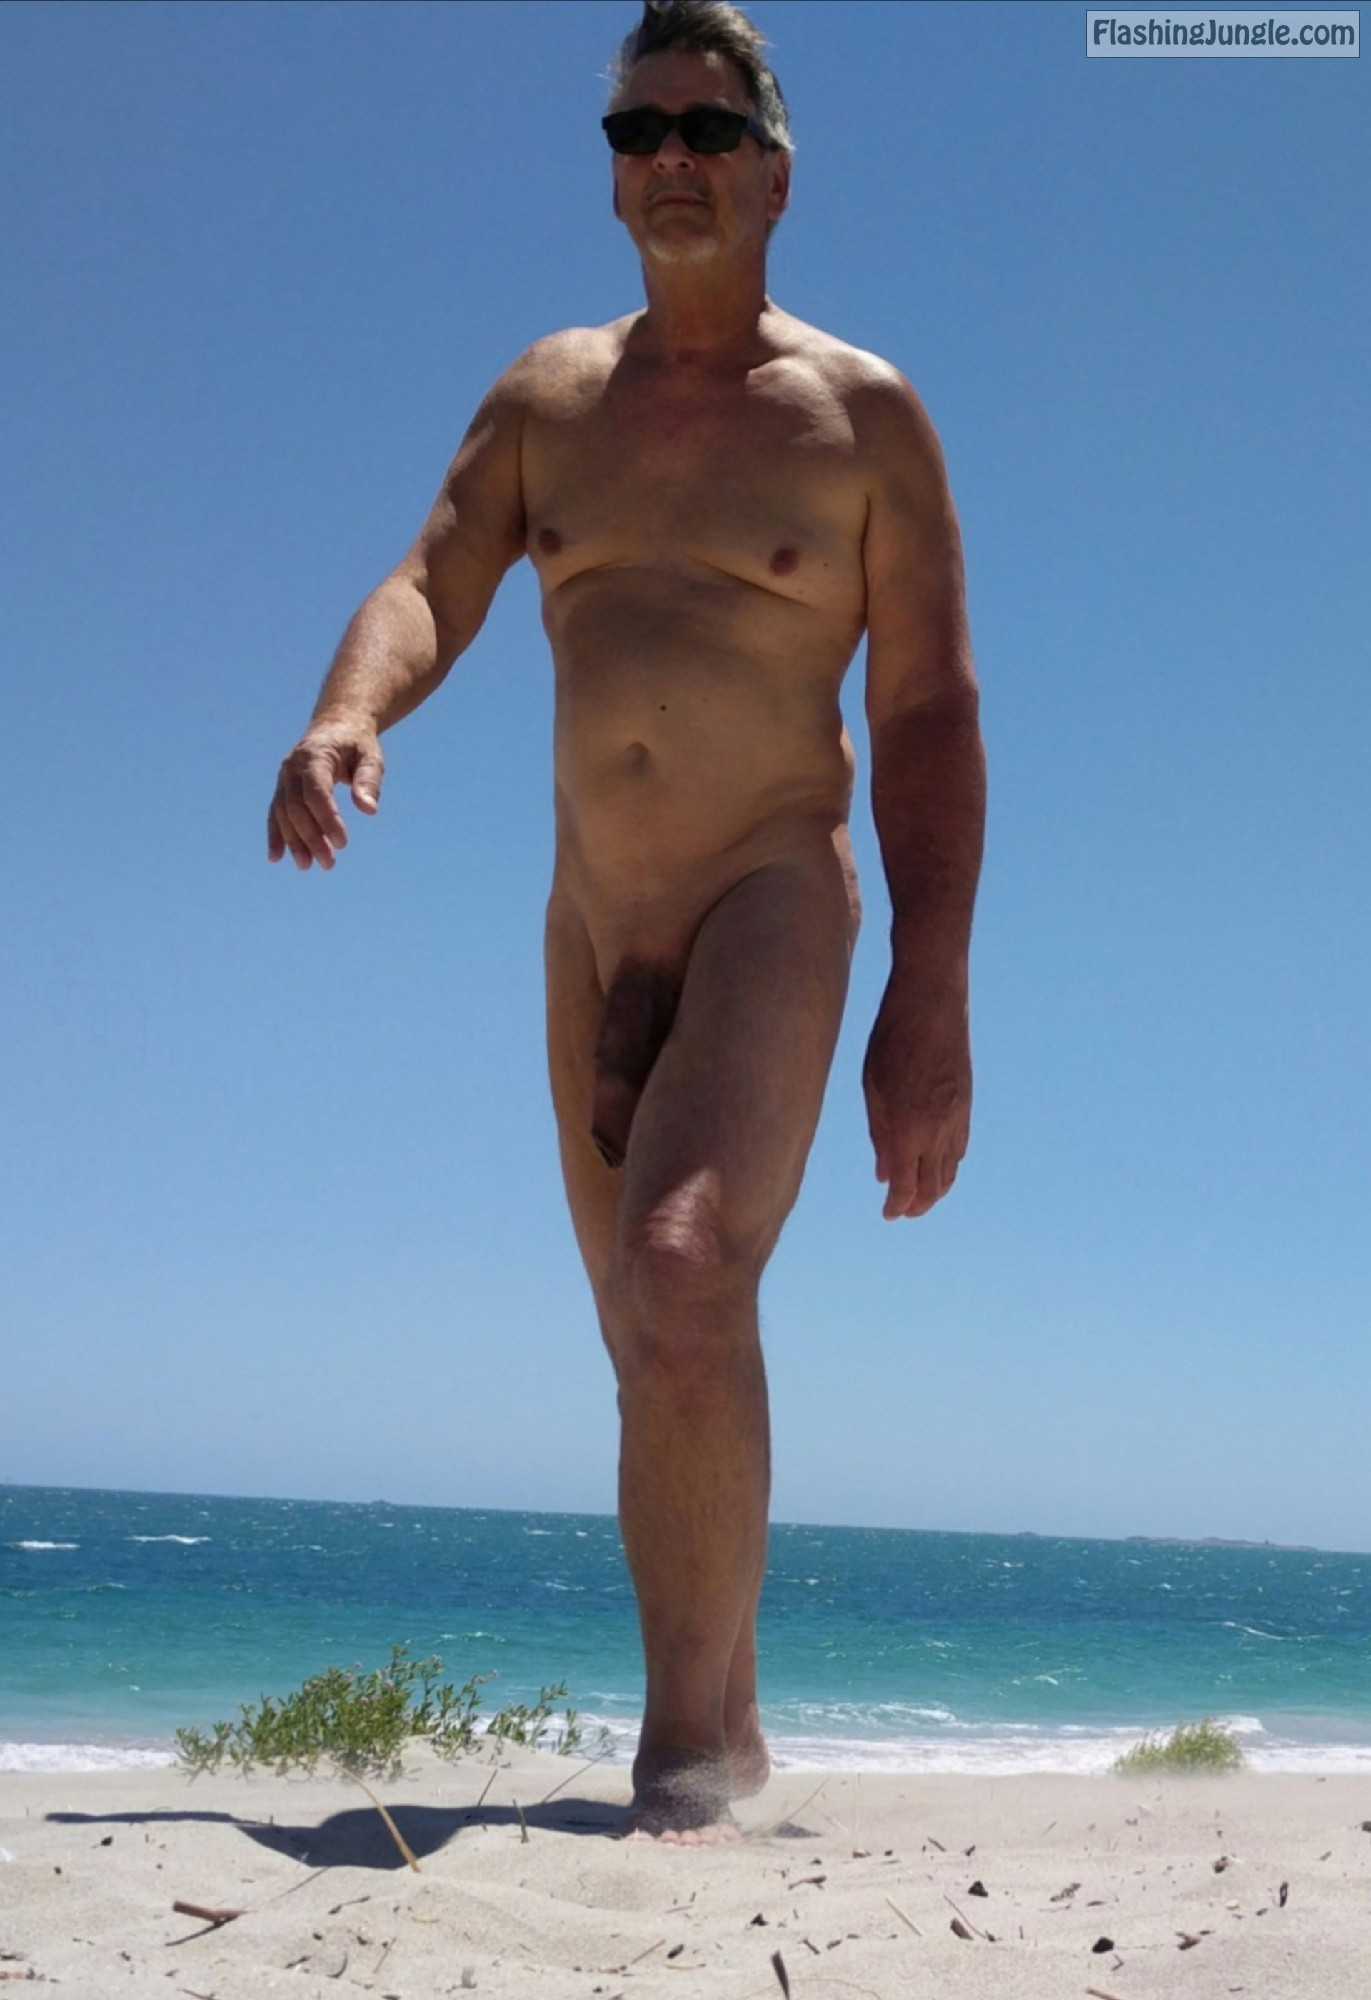 amateur nude beach reactions tmblr